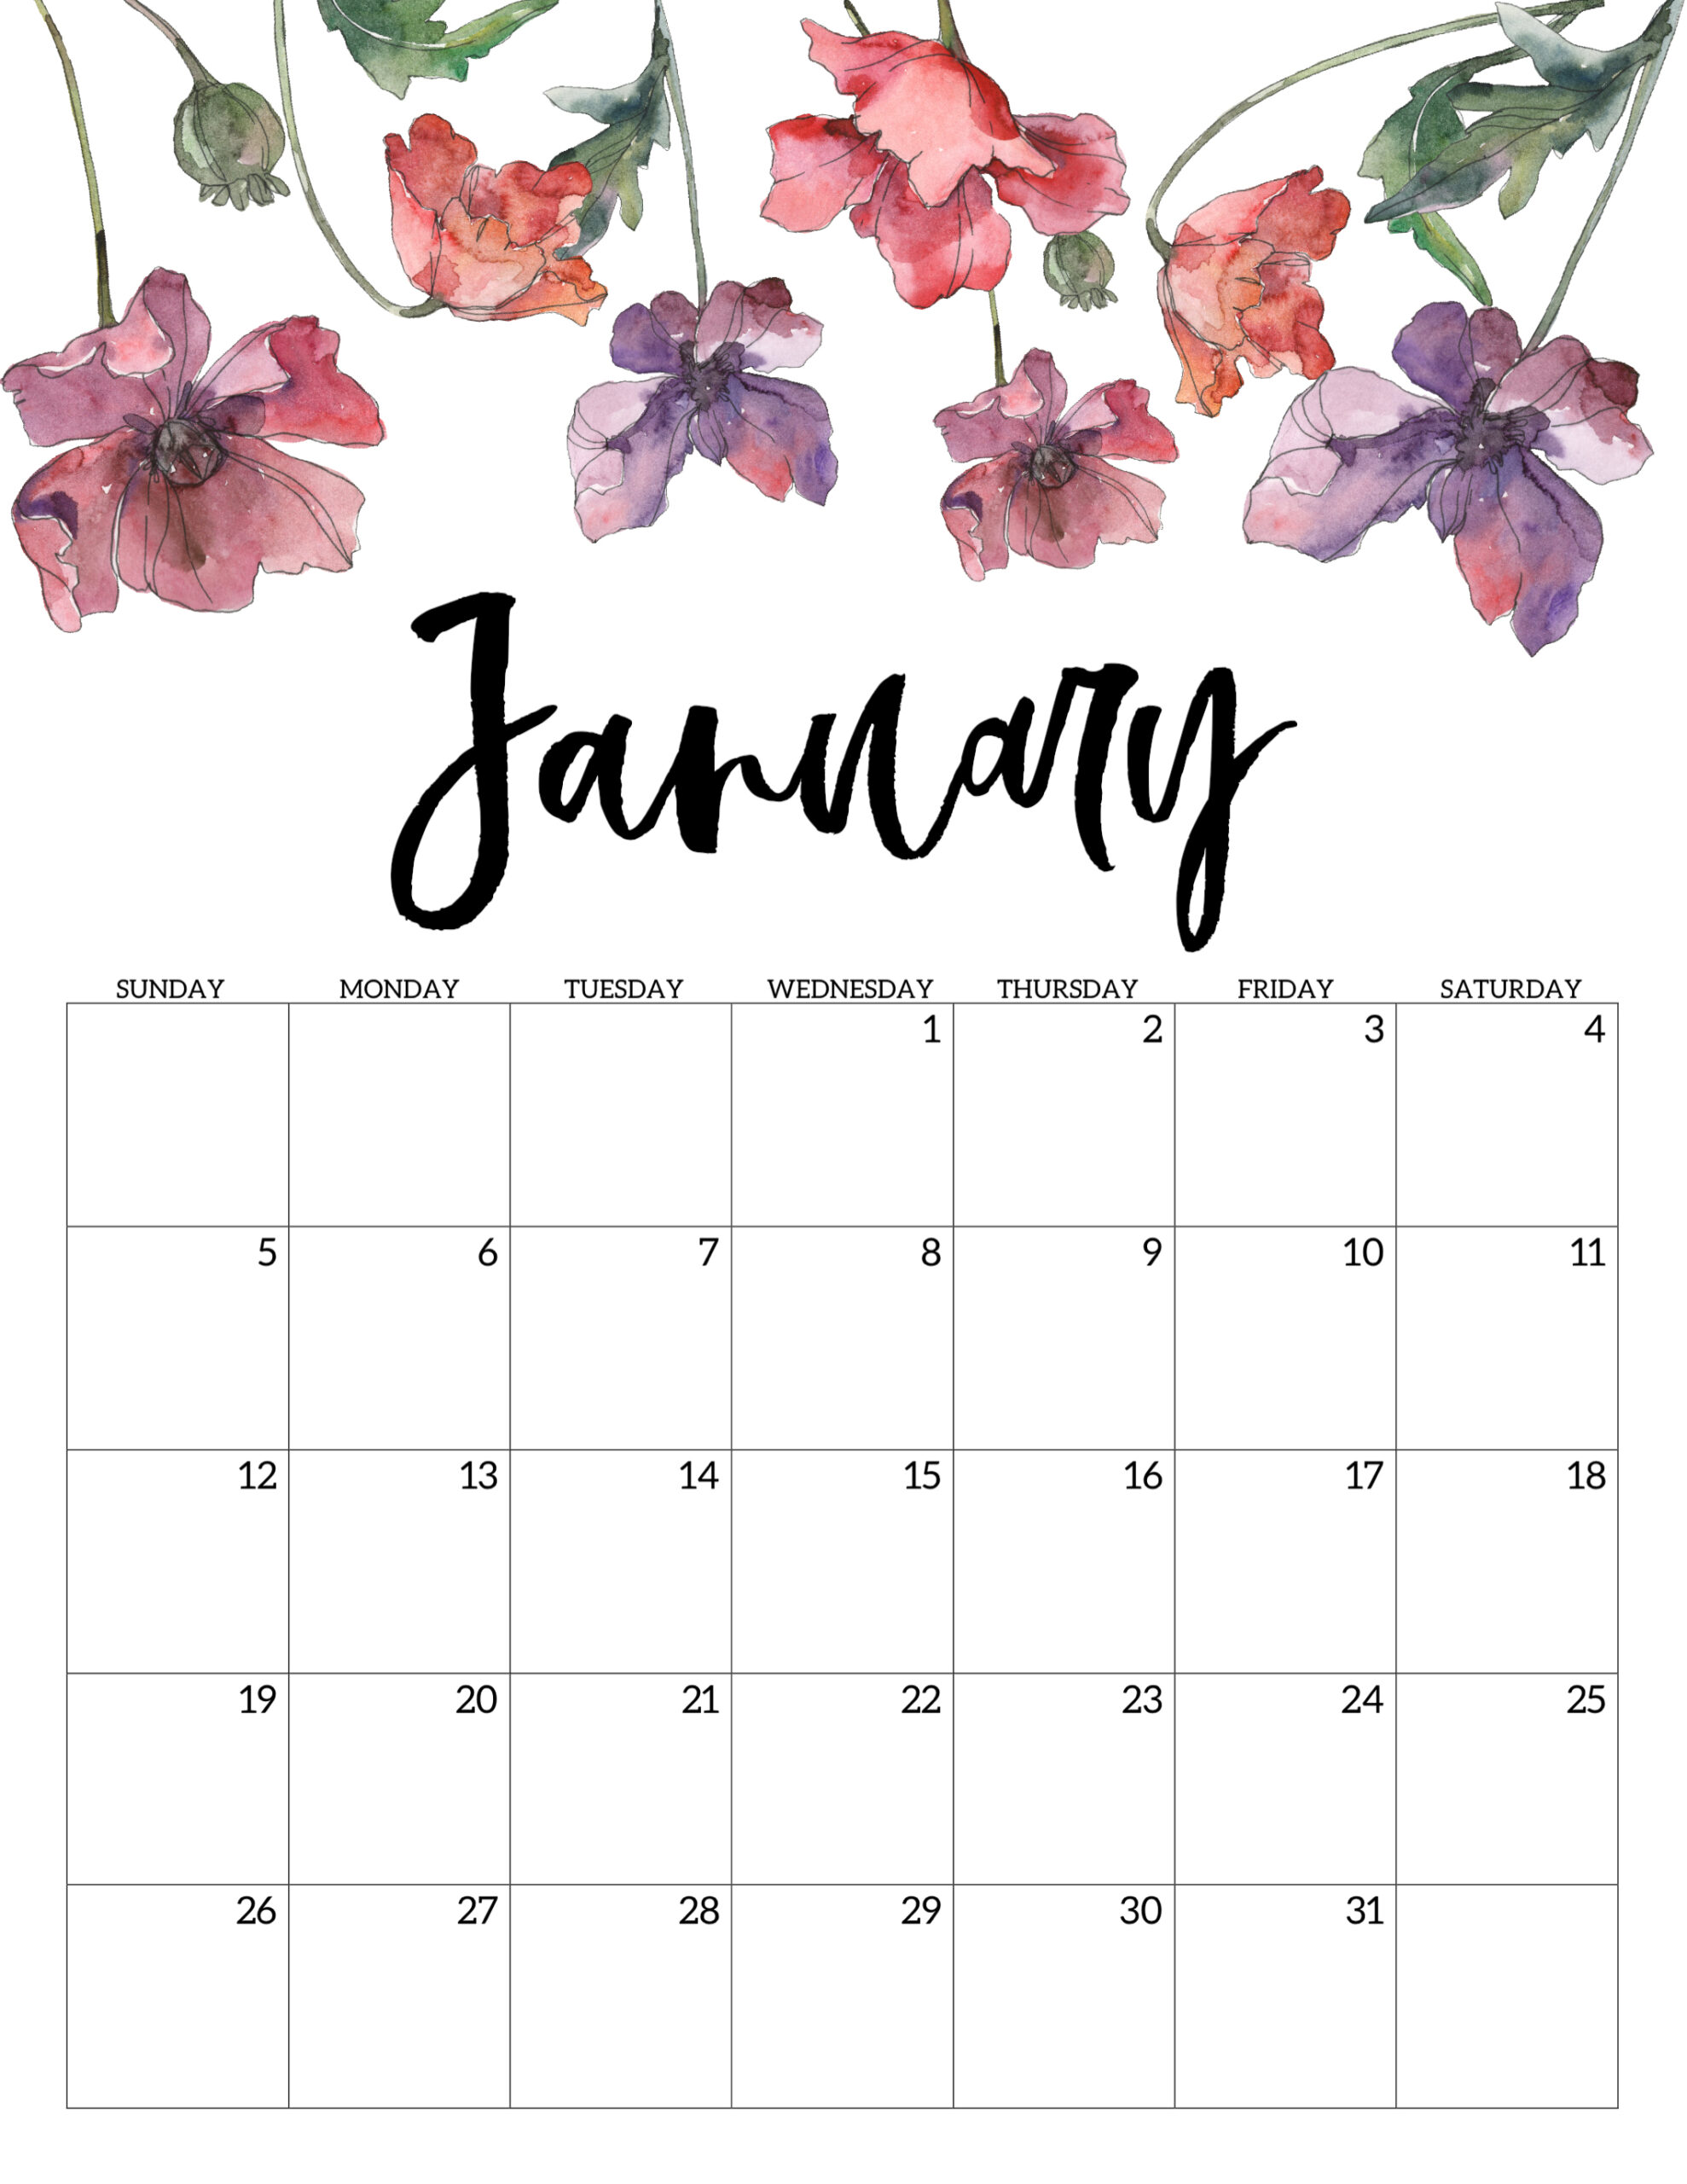 2020 Free Printable Calendar - Floral | Paper Trail Design pertaining to Girly Calewnder Of The Year